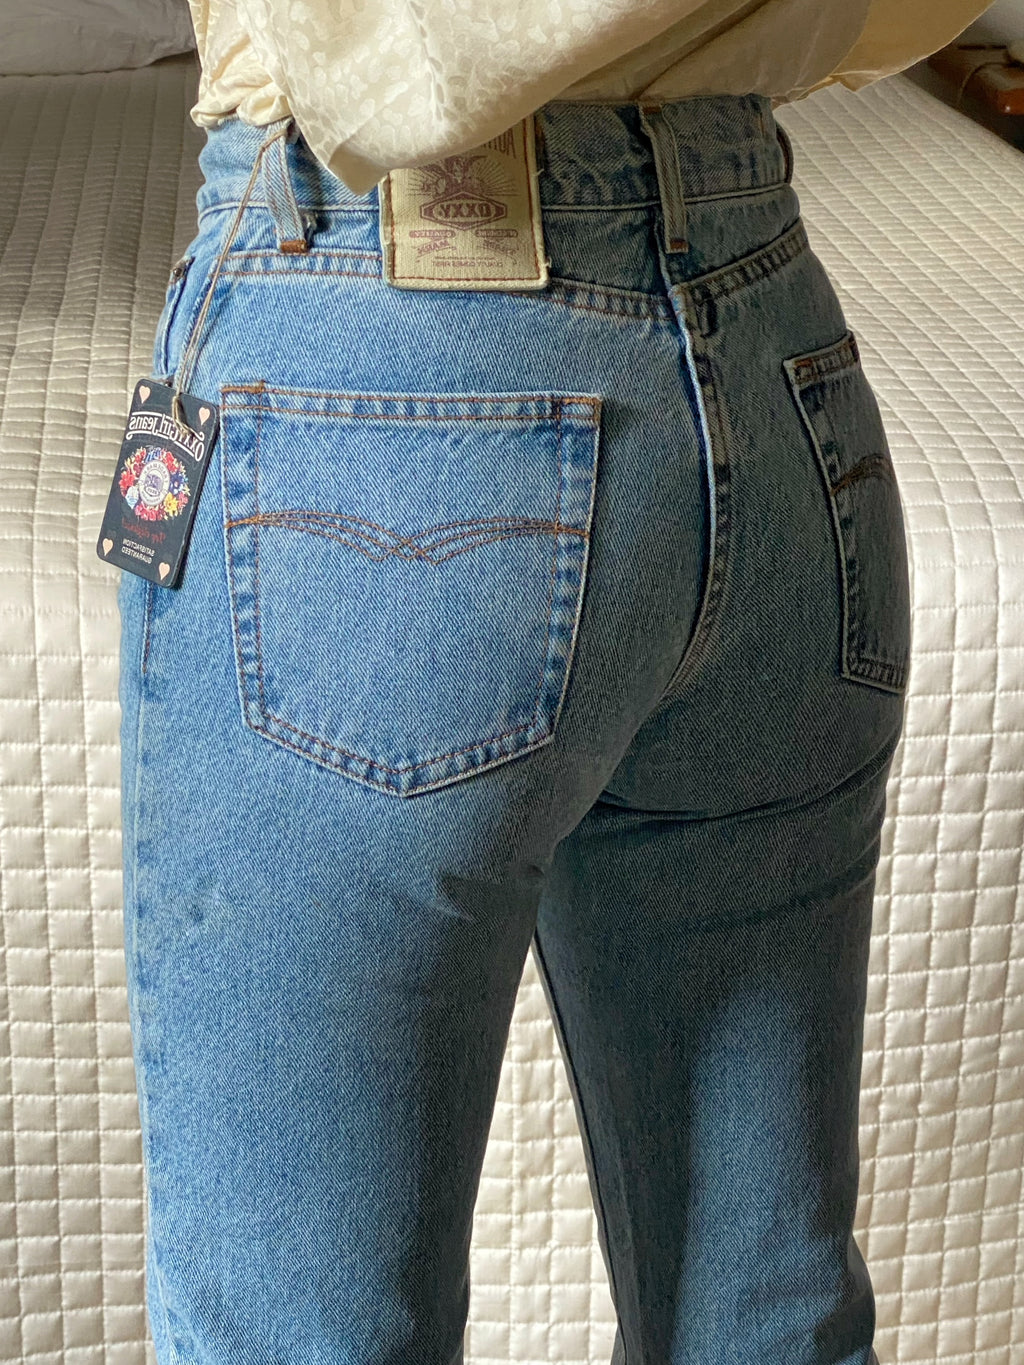 Vintage made in Italy Oxxy pure cotton light blue jeans W28